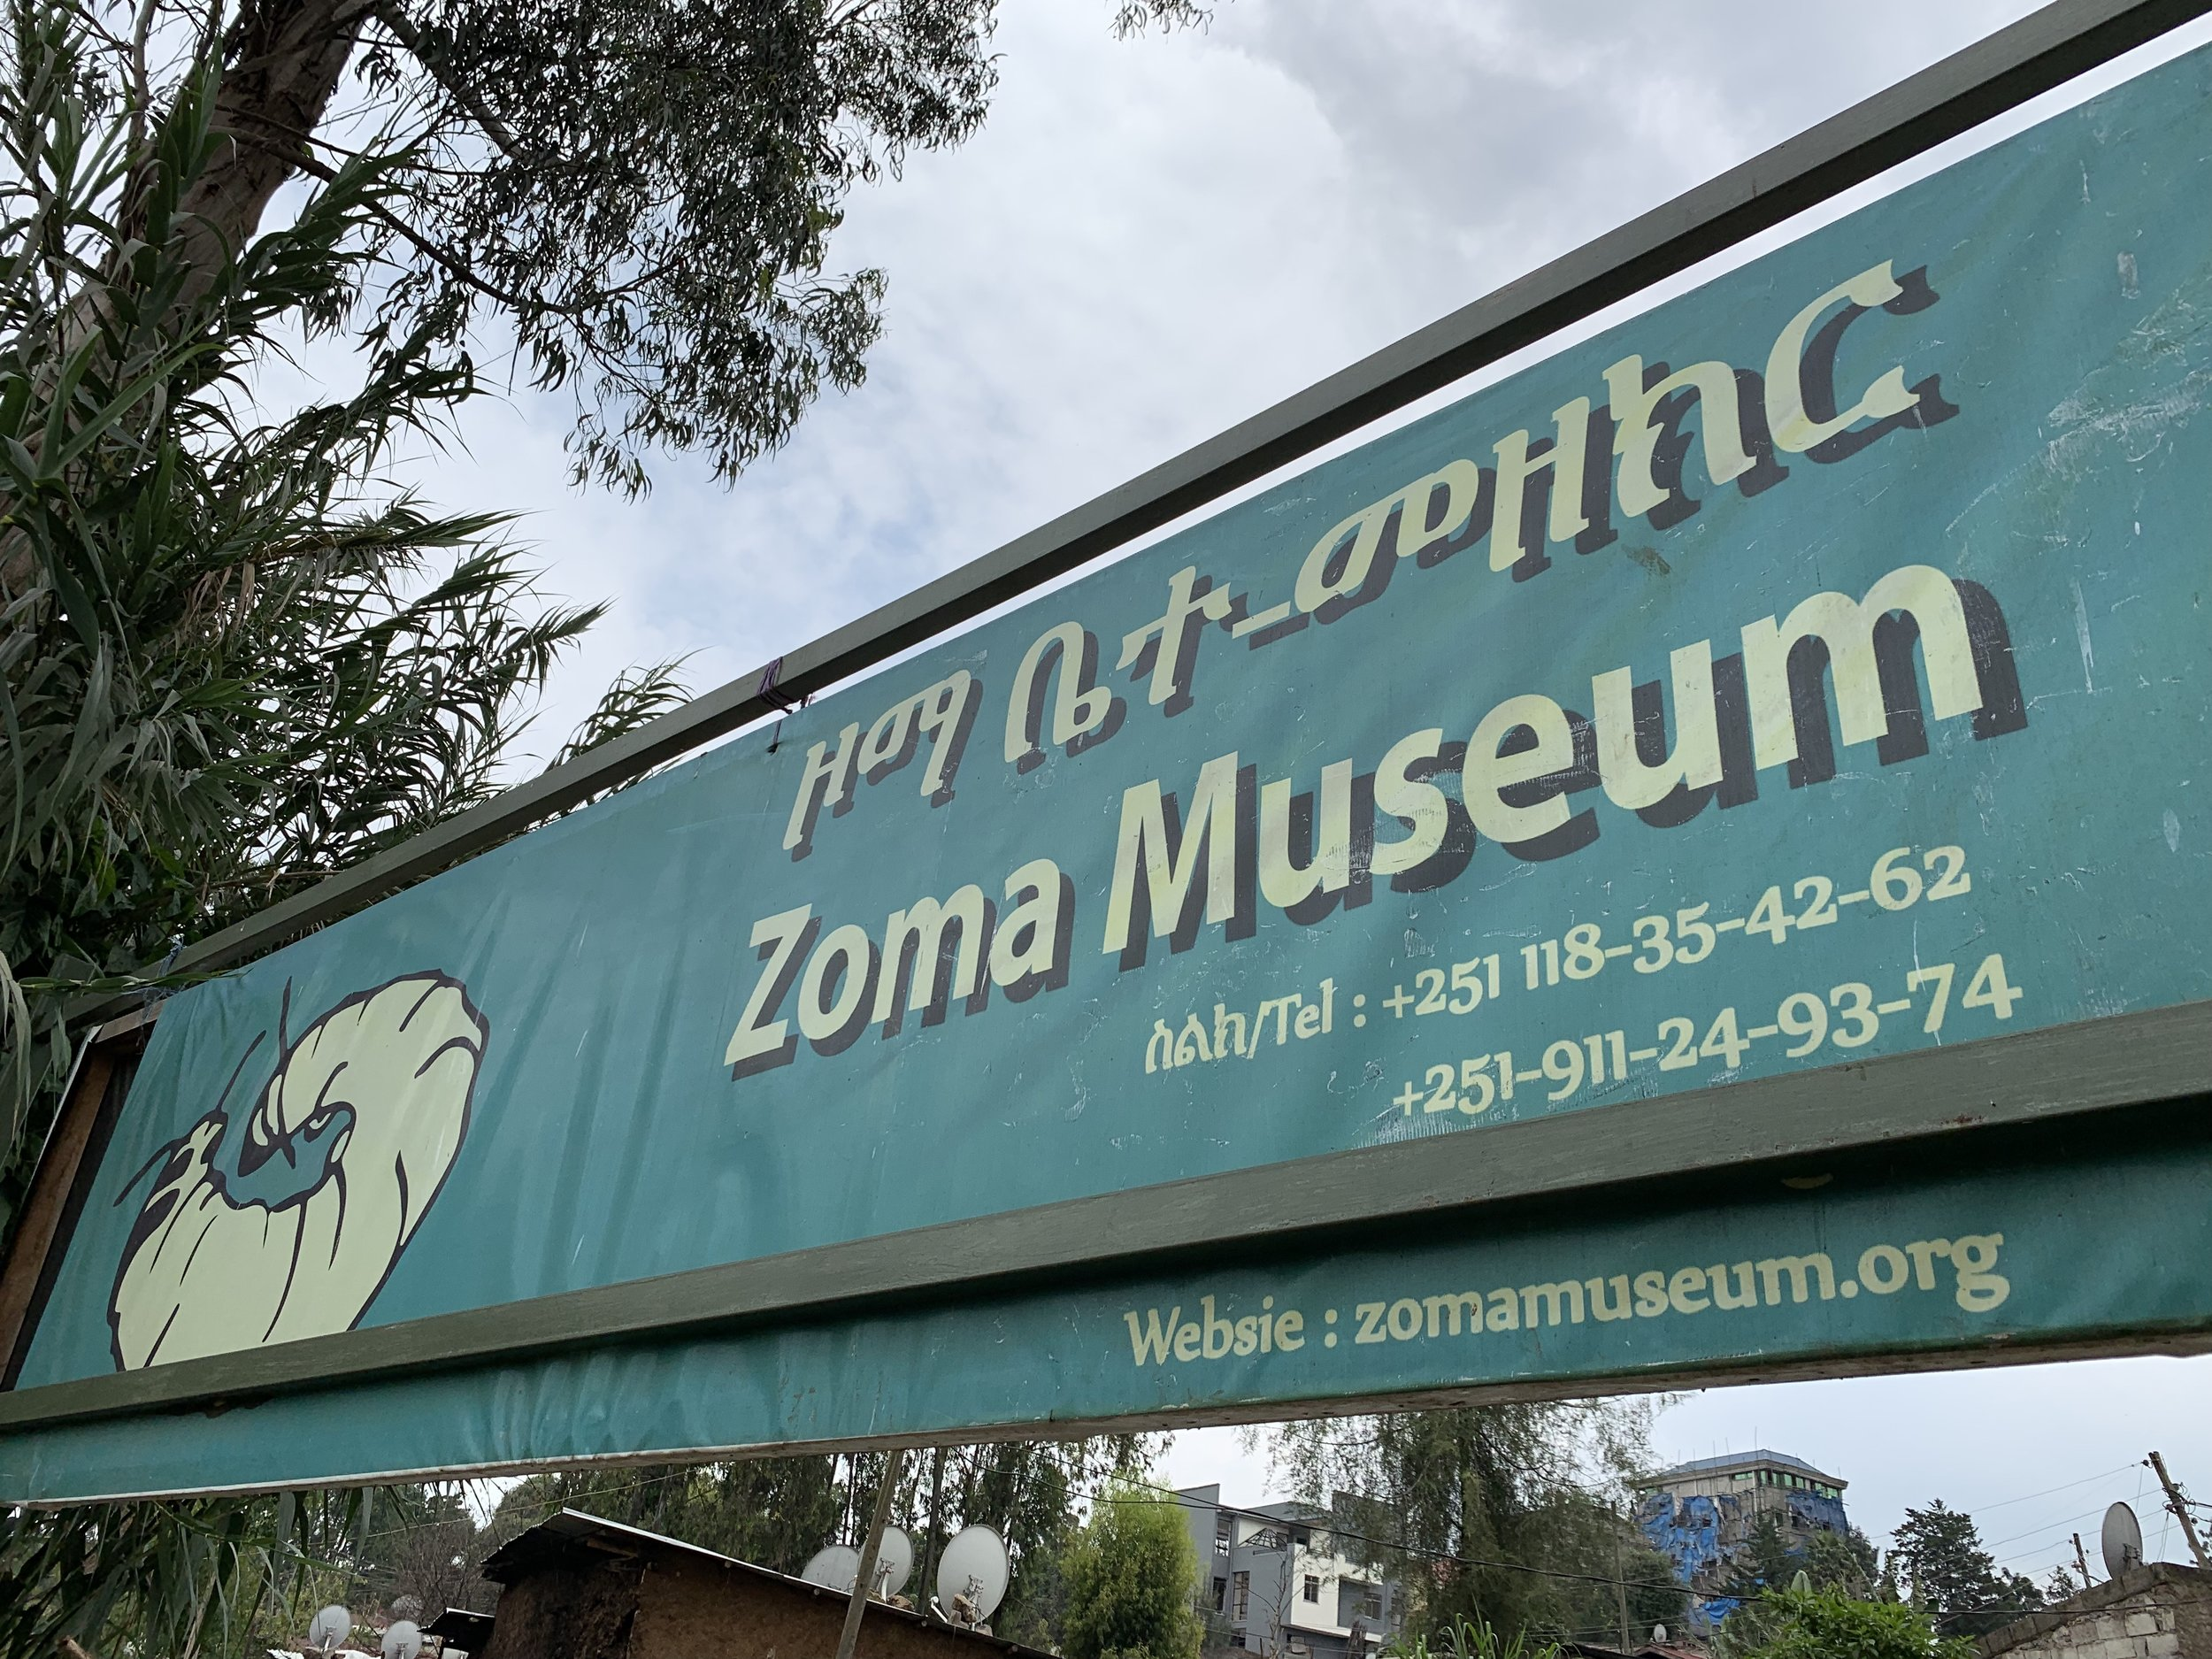 The entrance gate sign to Zoma Museum, which proved rather hard to find. And totally worth it.